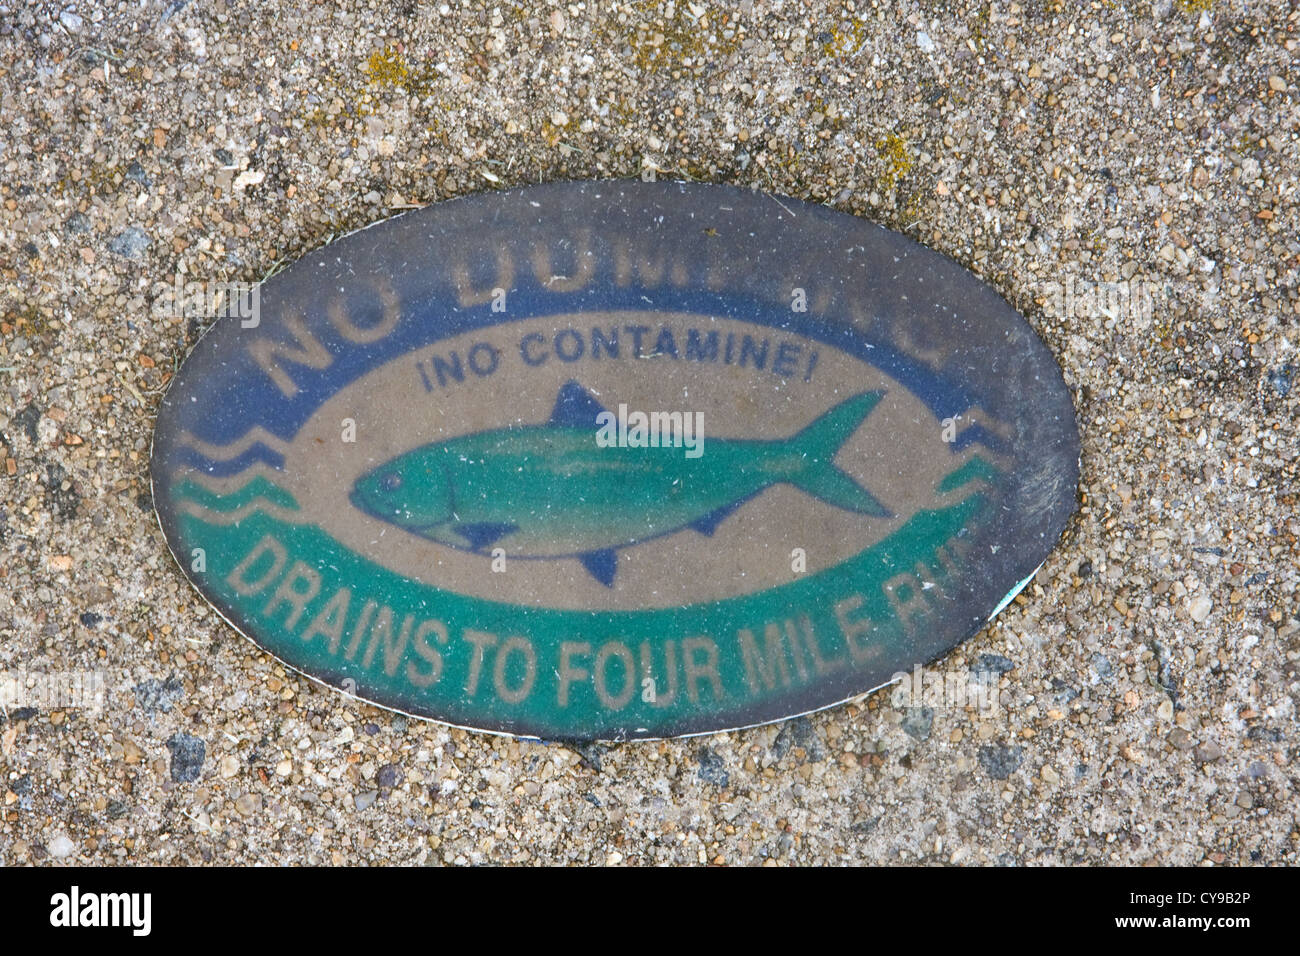 City of Alexandria No Dumping Drains to Four Mile Run oval placard on a storm drain structure. - Stock Image